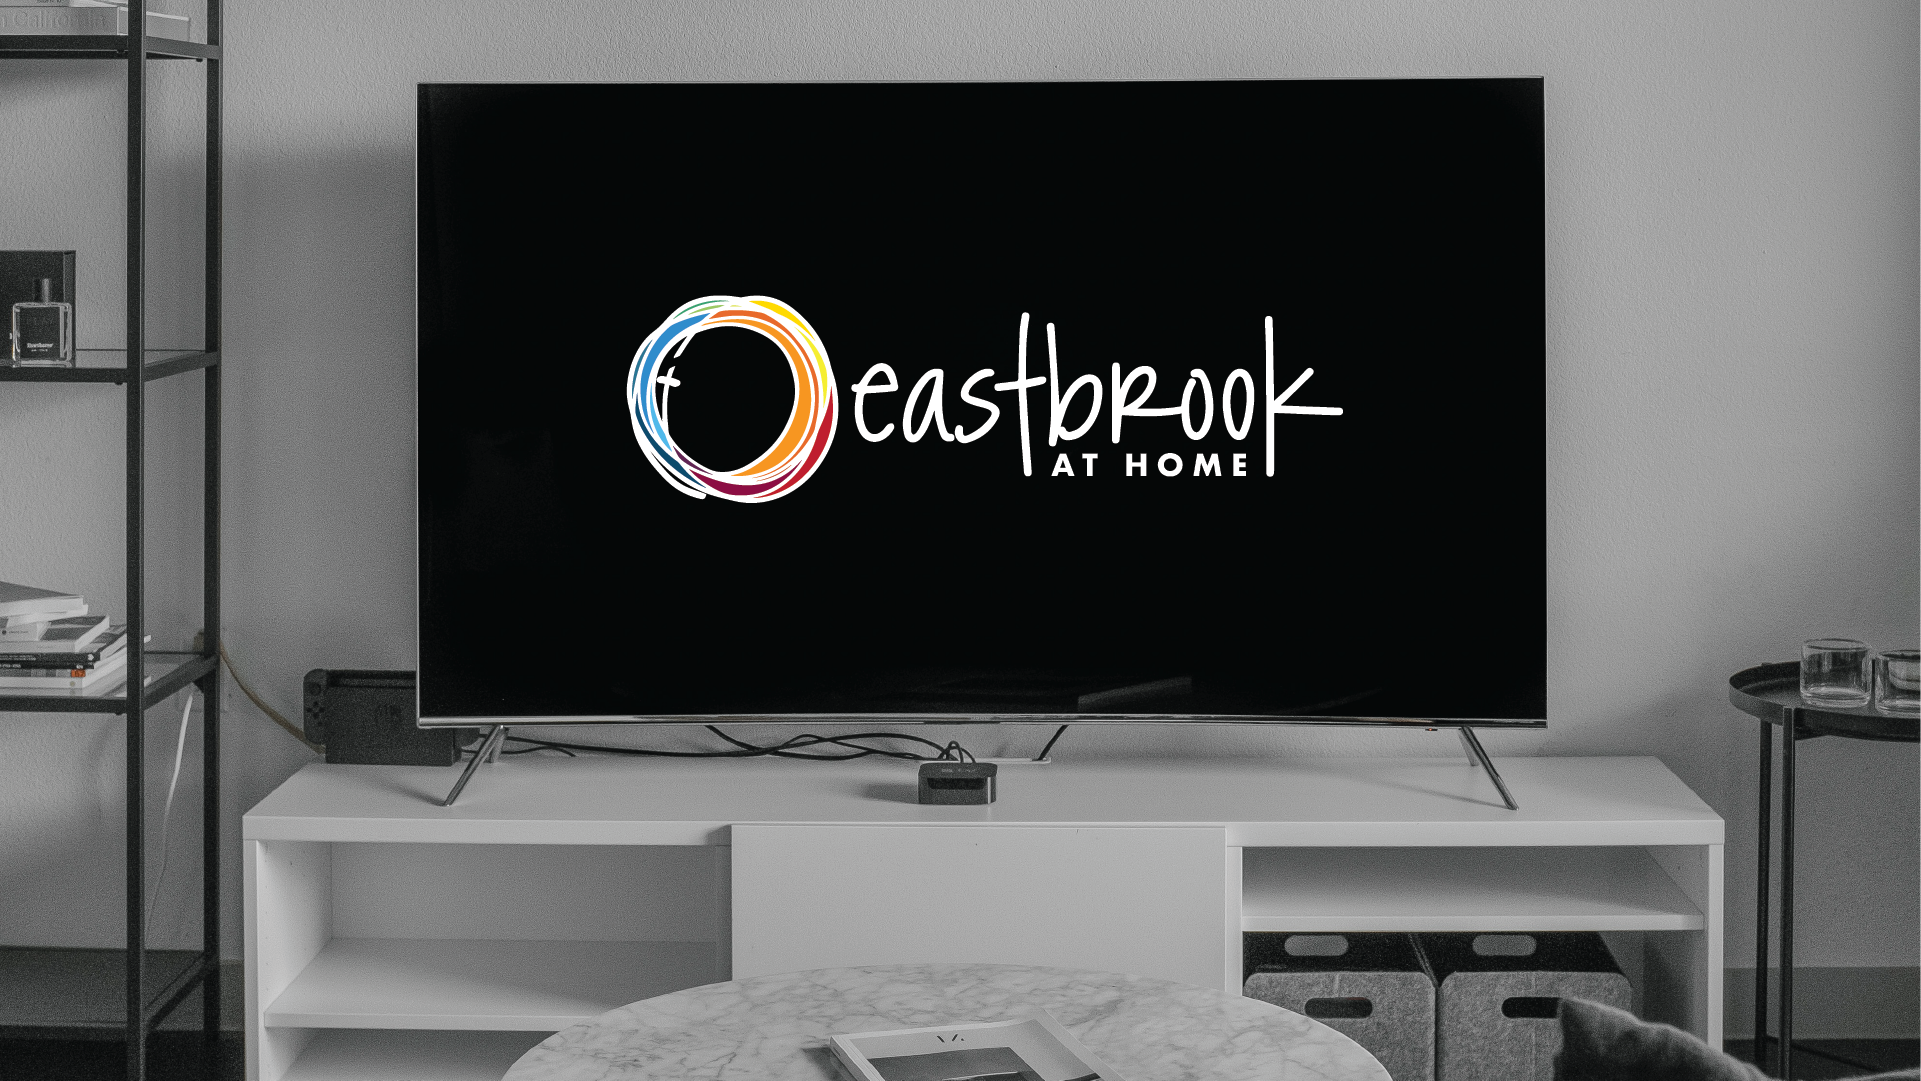 Eastbrook-At-Home-Series-GFX_16x9-Title